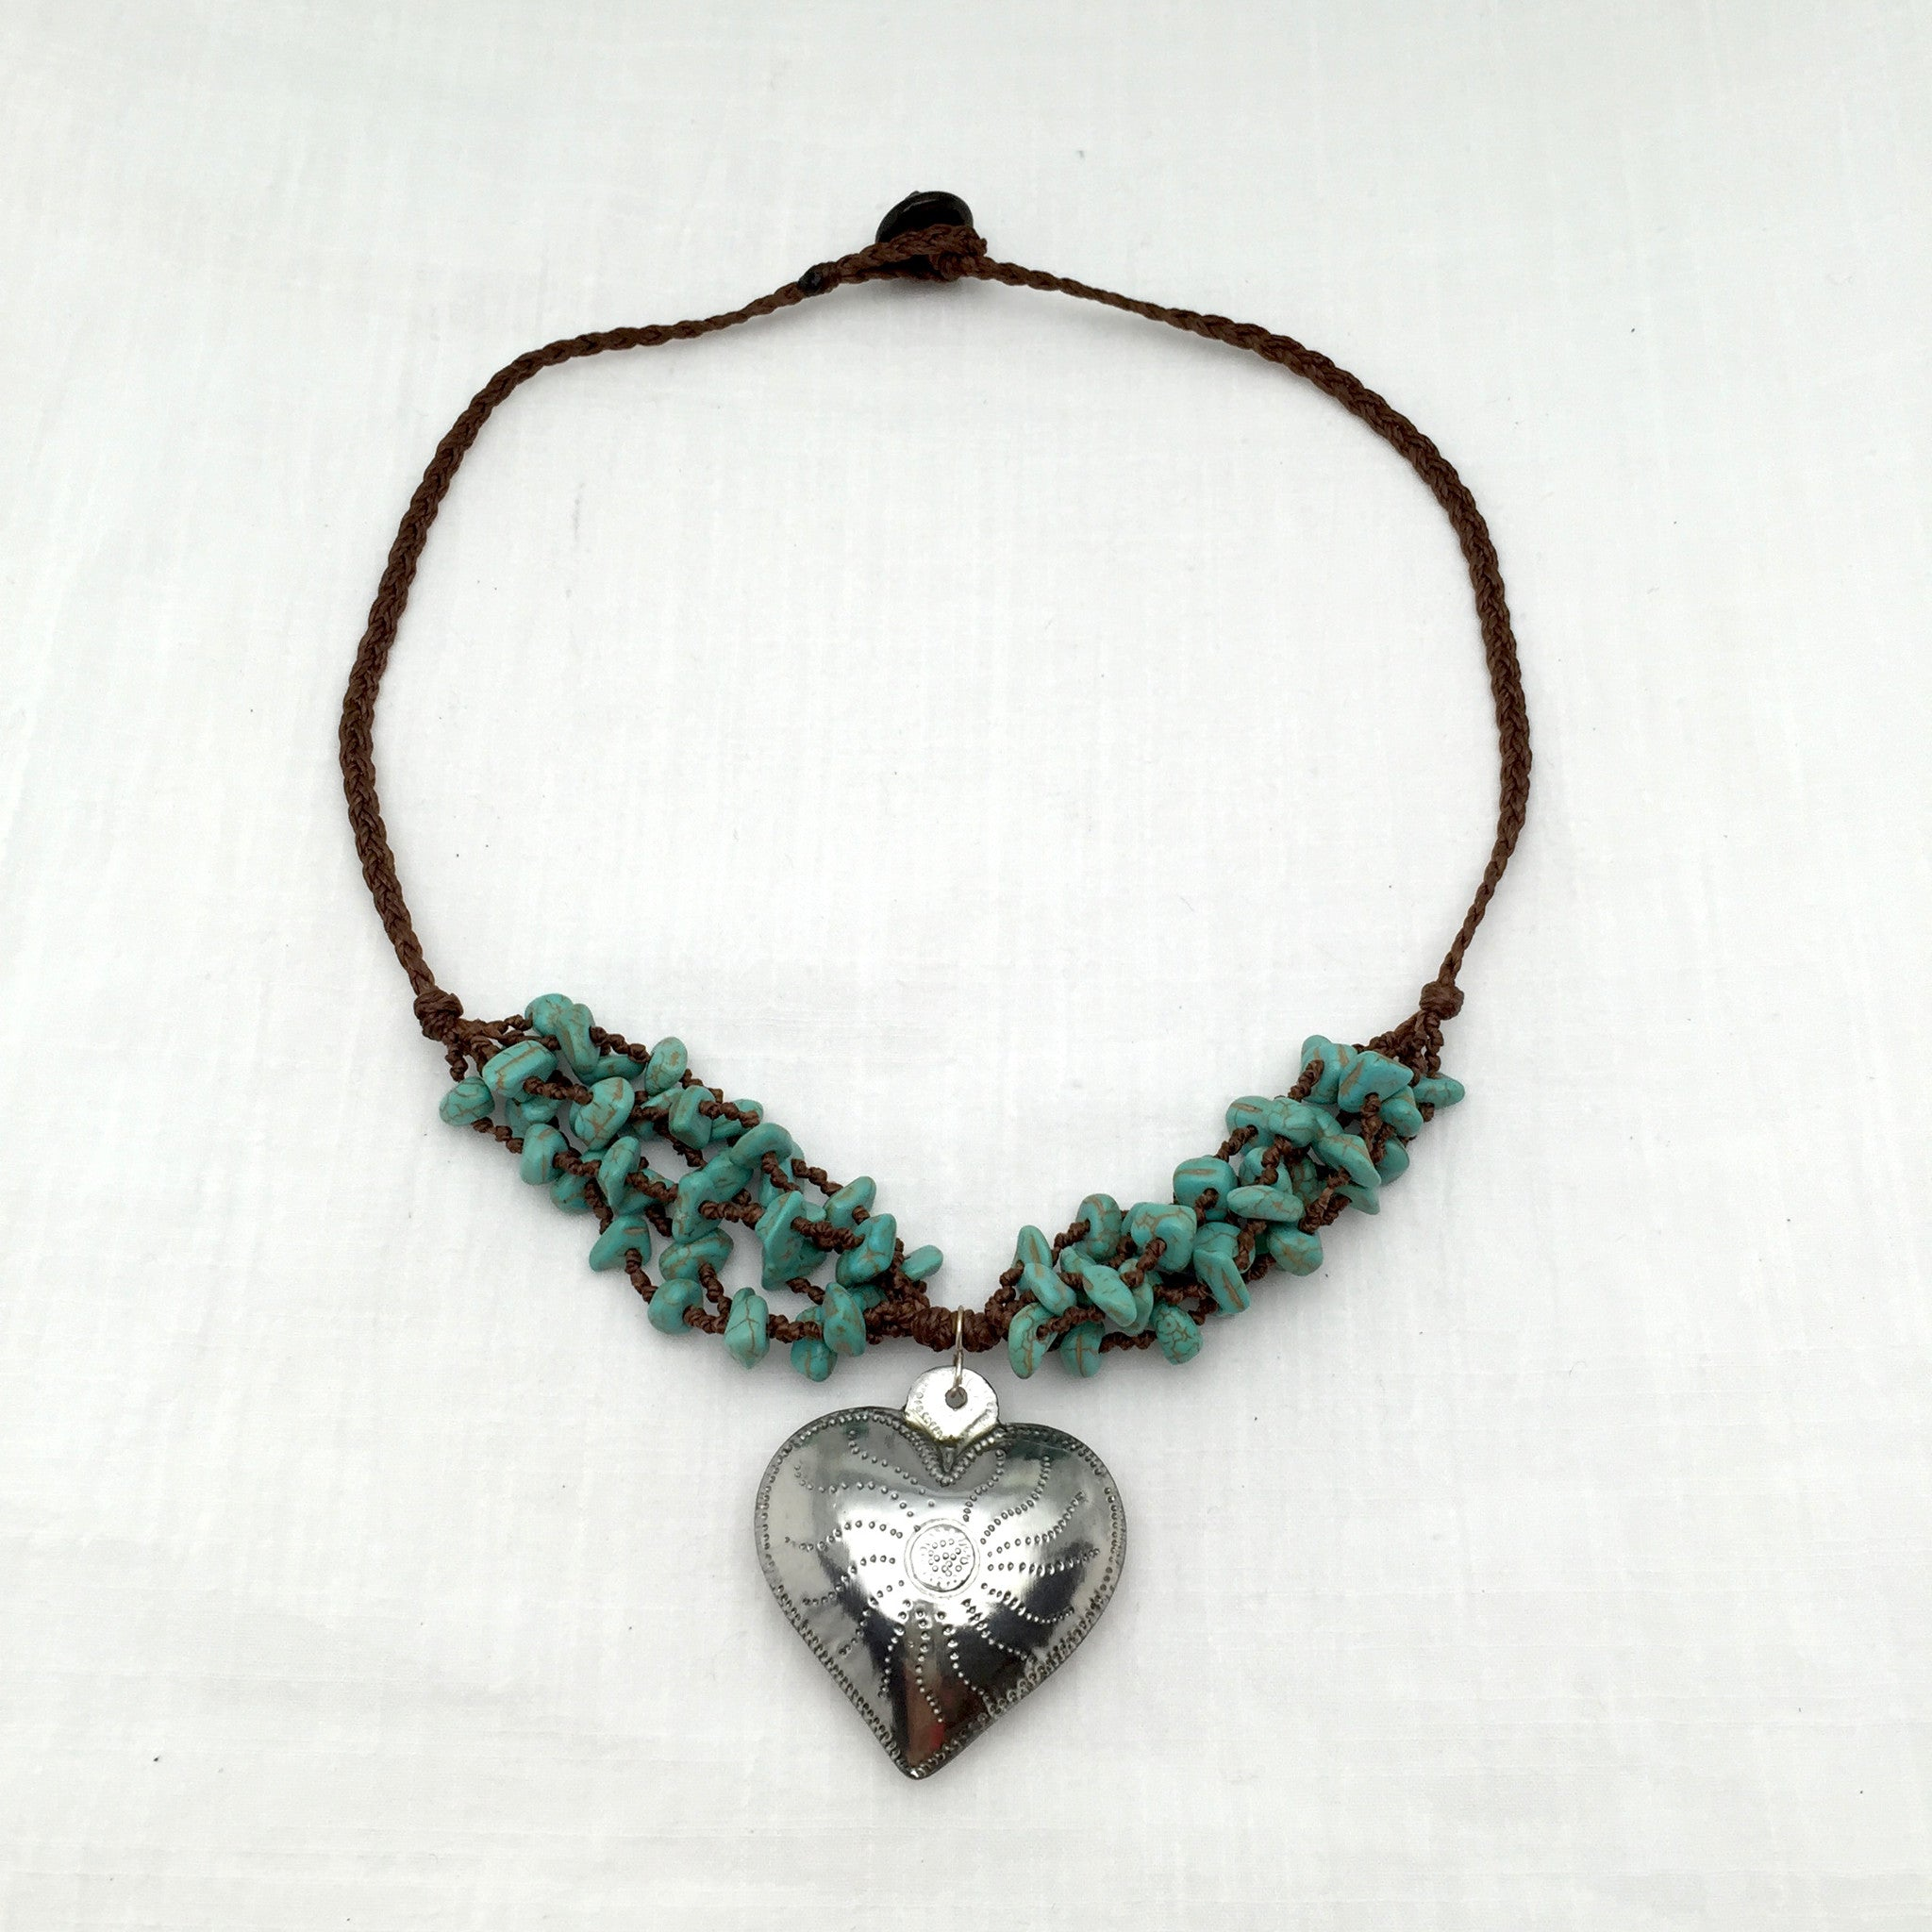 Amor turquoise tin necklace